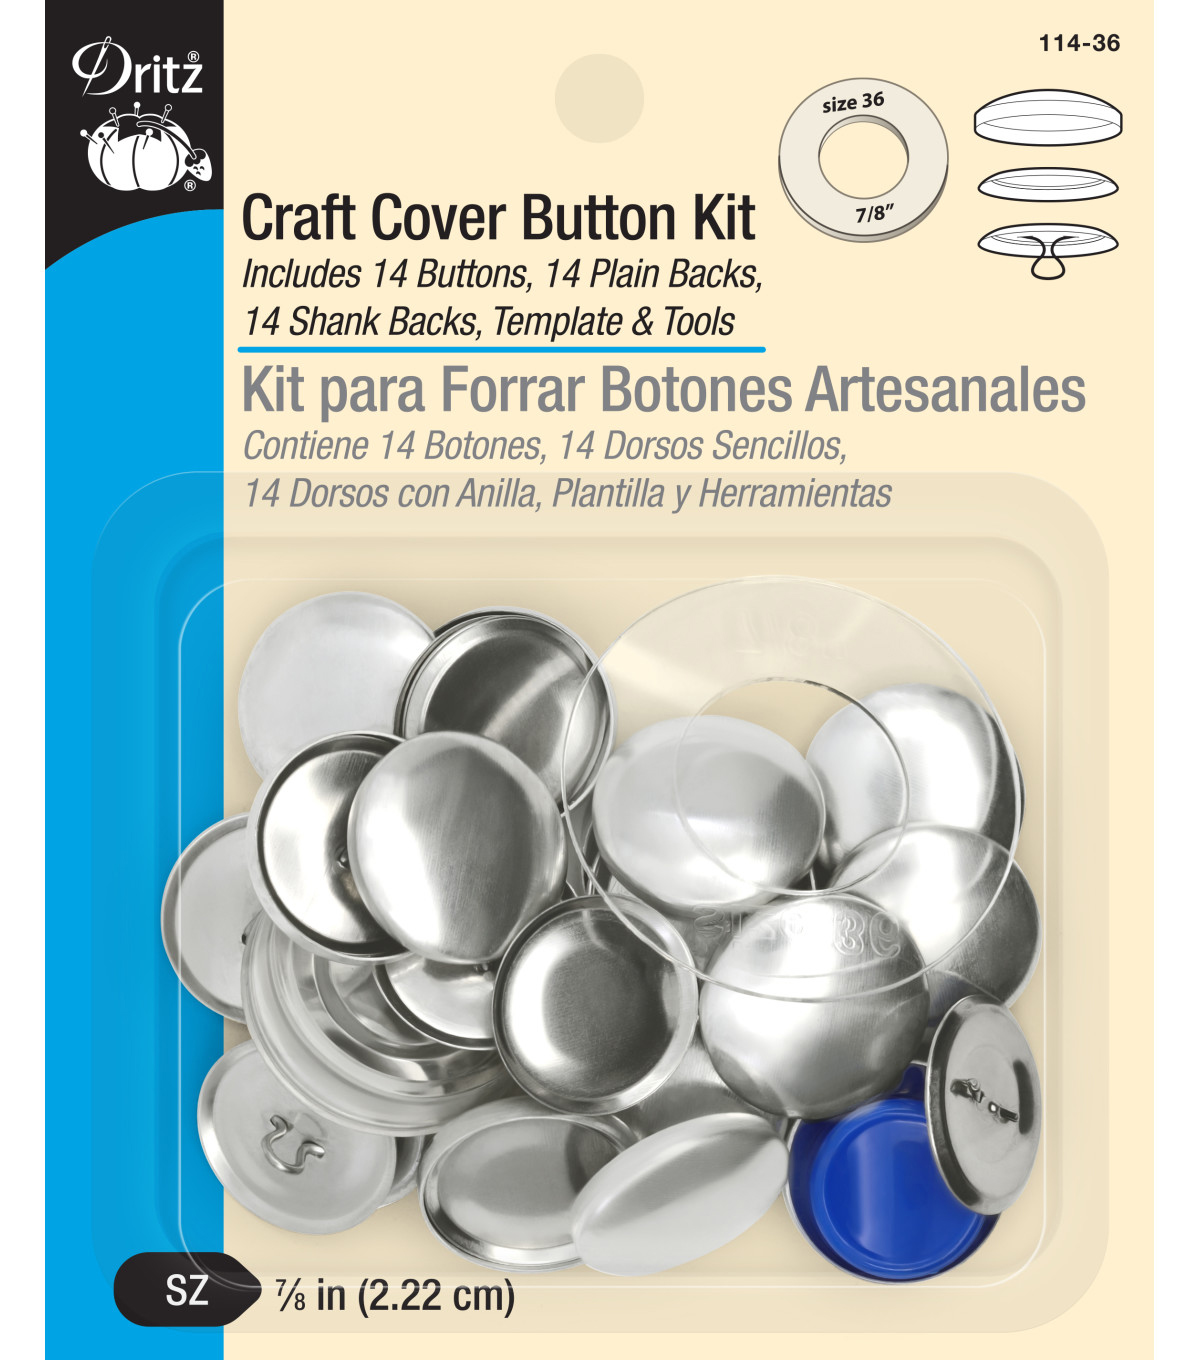 Dritz Craft Cover Button Kit Size 36